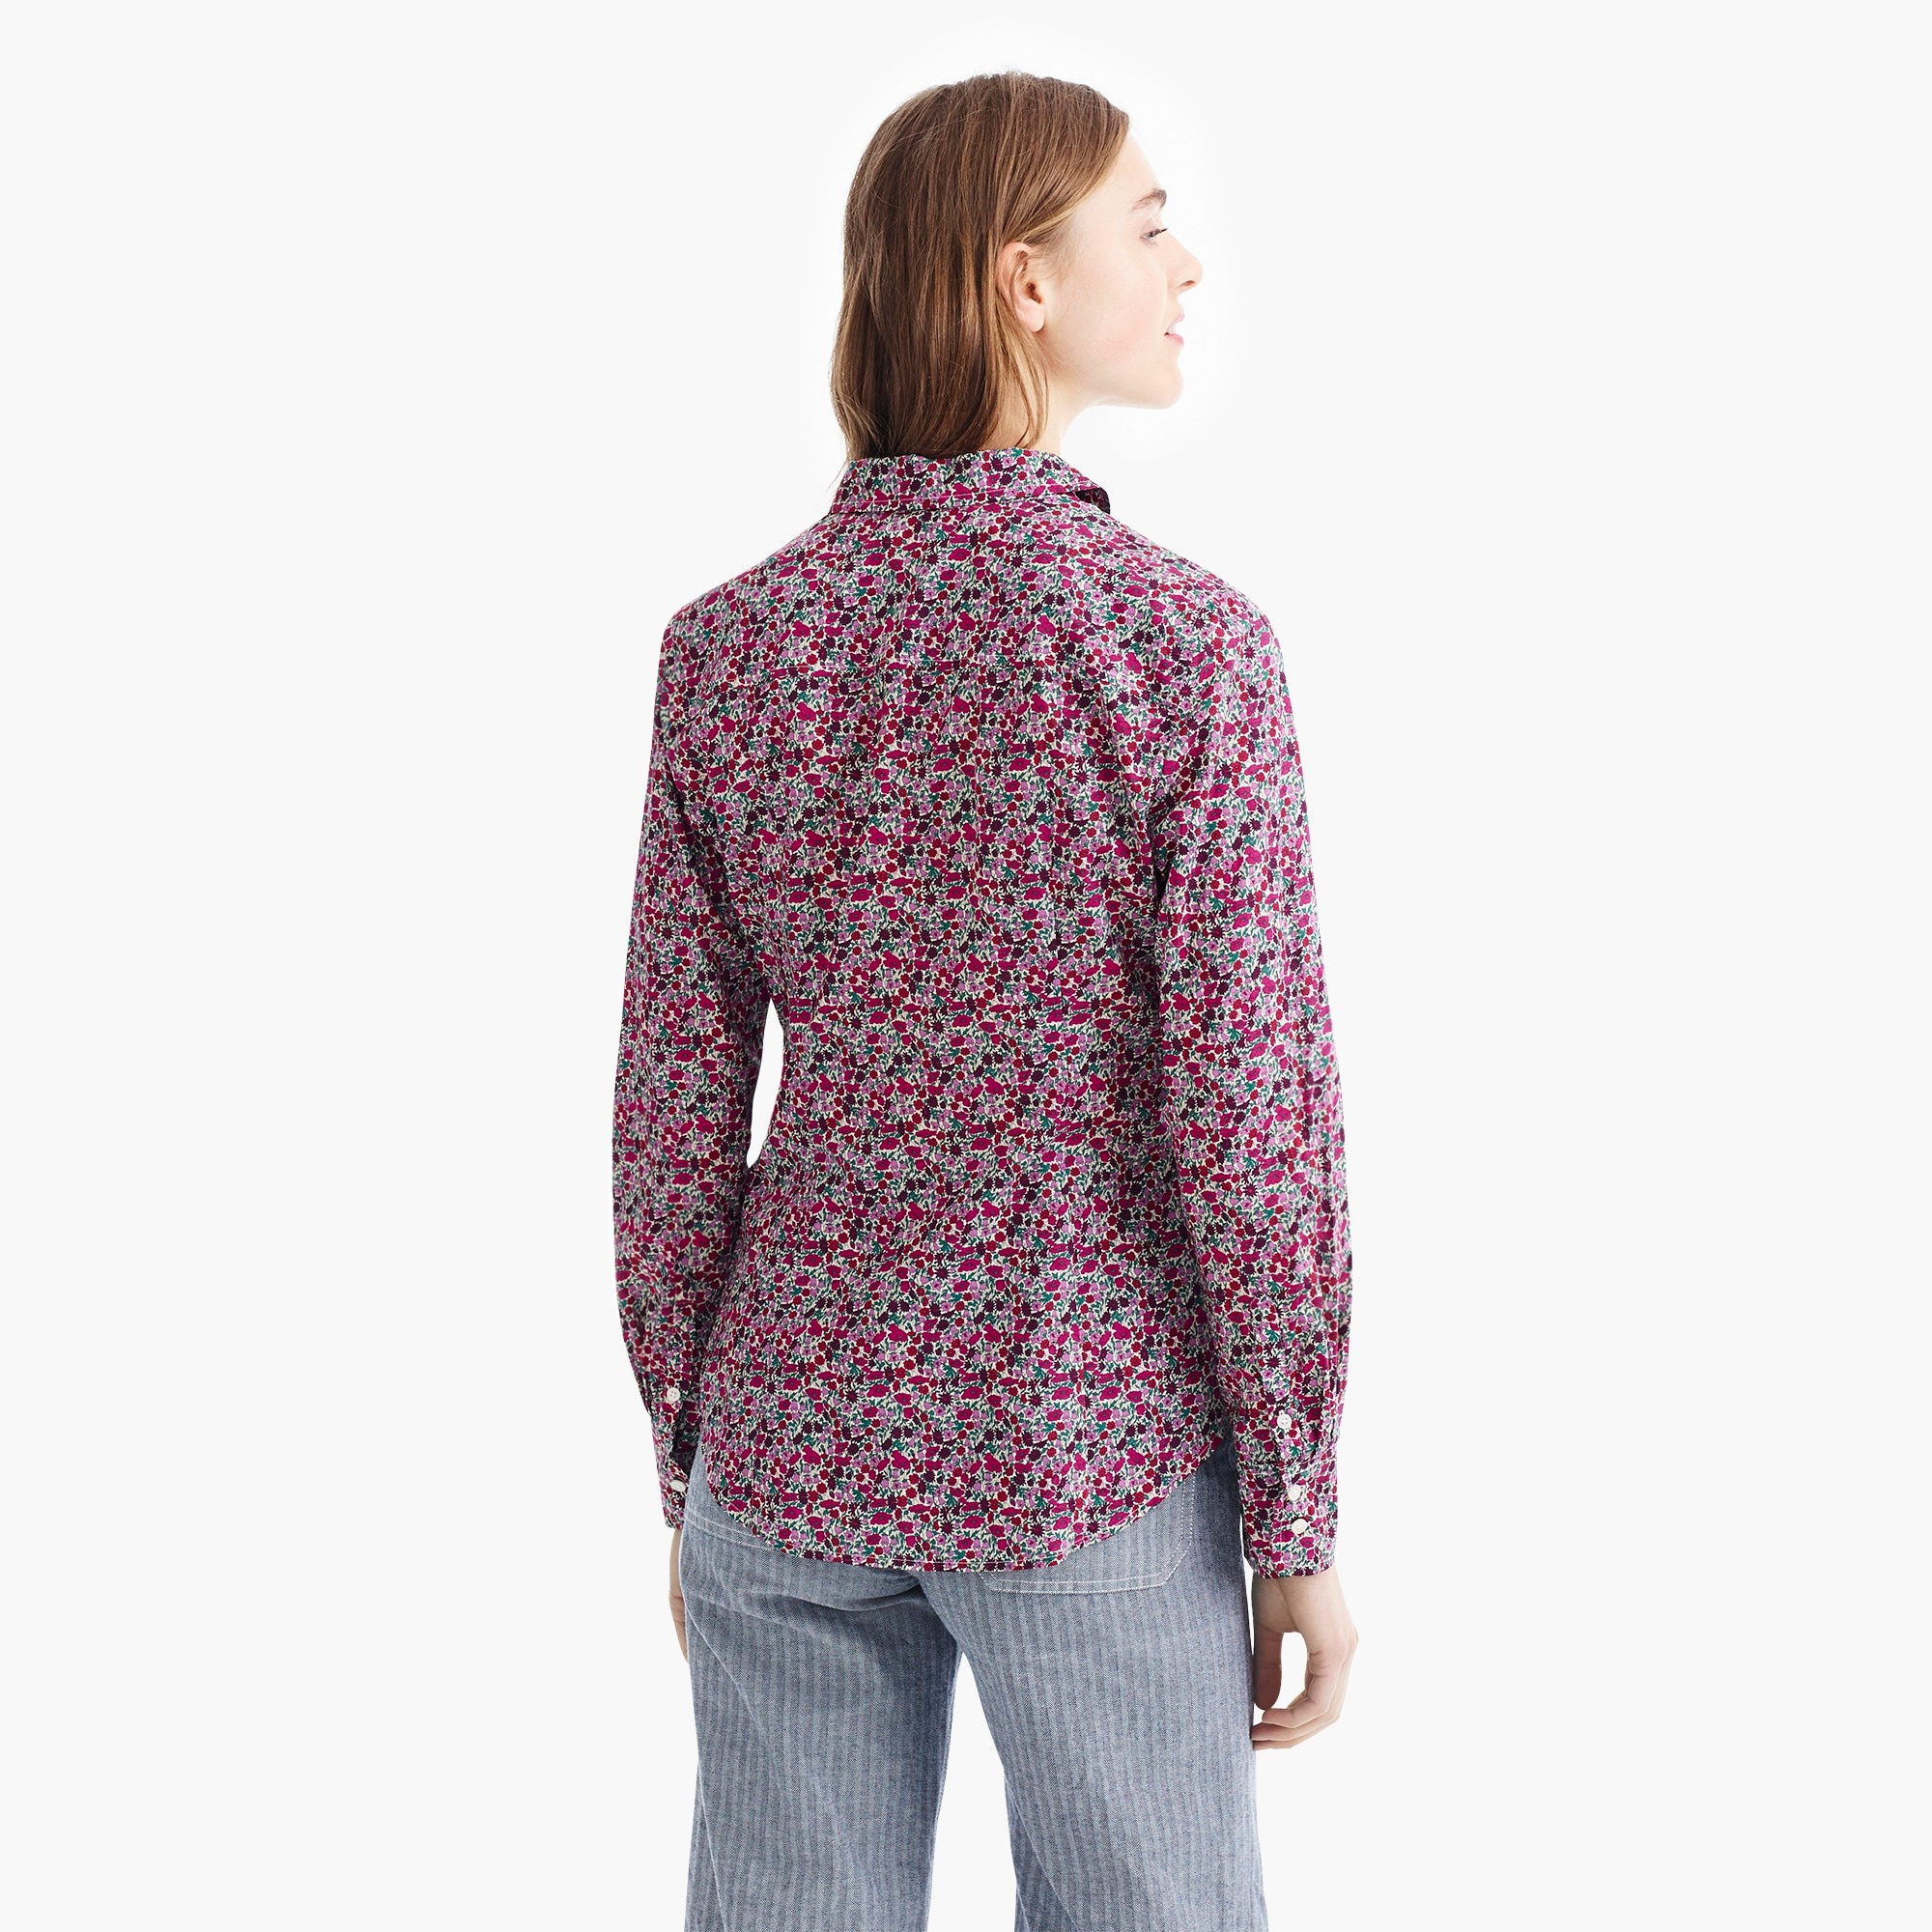 Slim perfect shirt in Liberty® floral